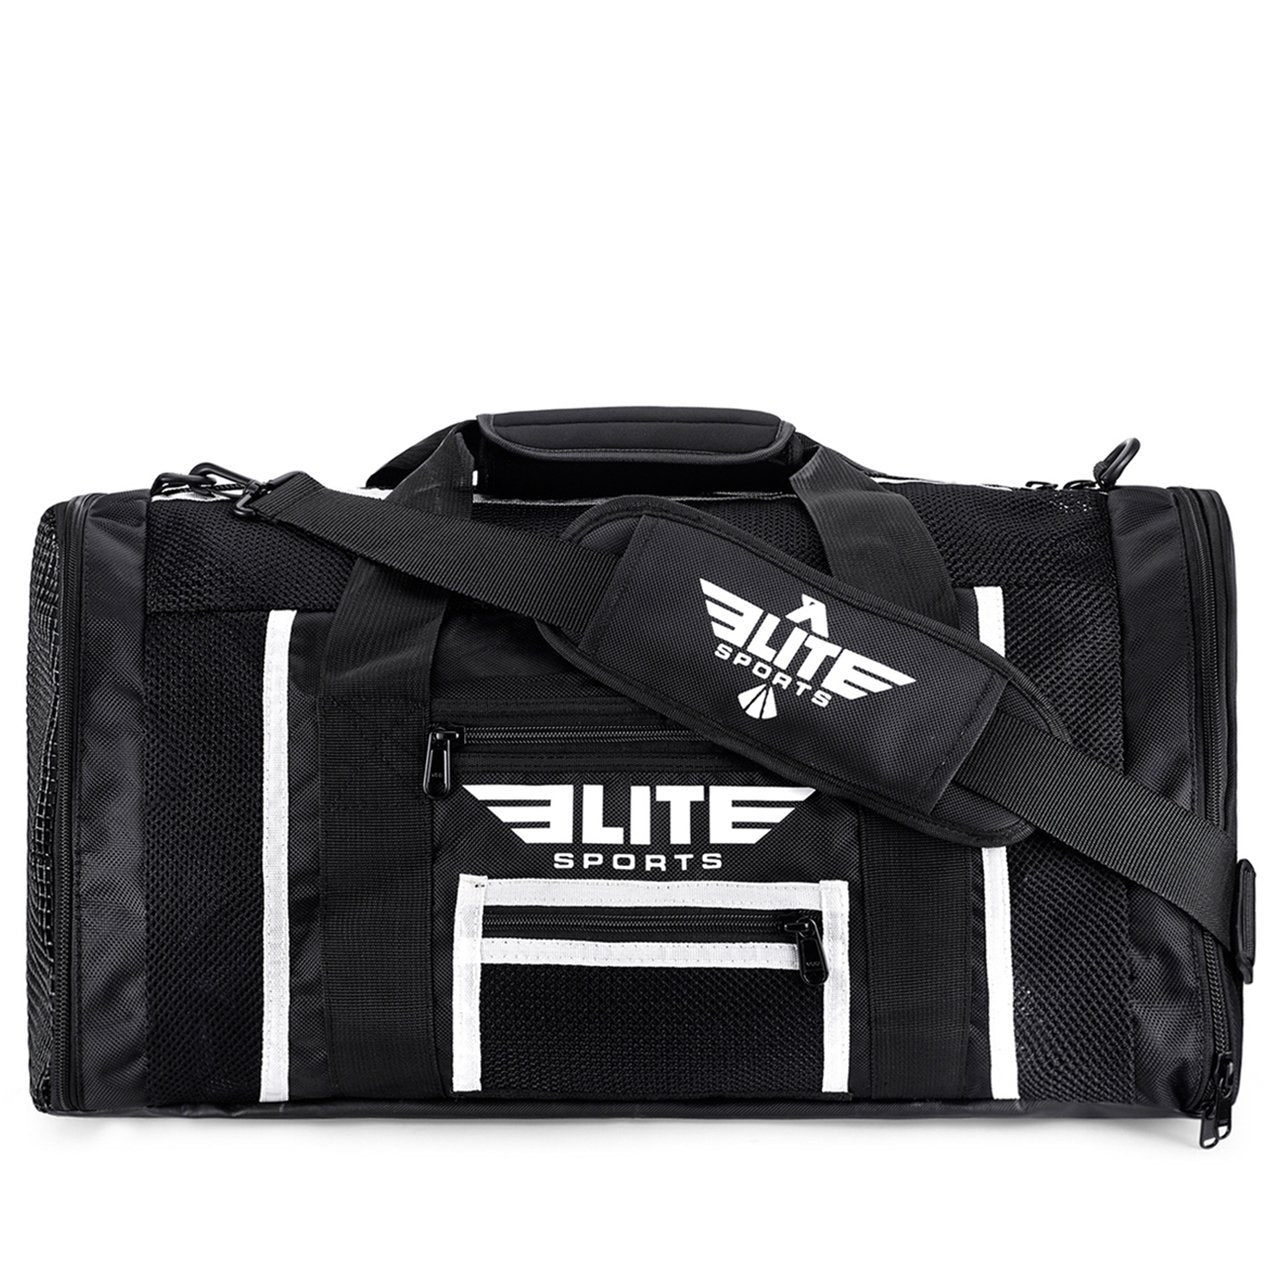 Elite Sports Mesh Black Large Brazilian Jiu Jitsu BJJ Gear Gym Bag